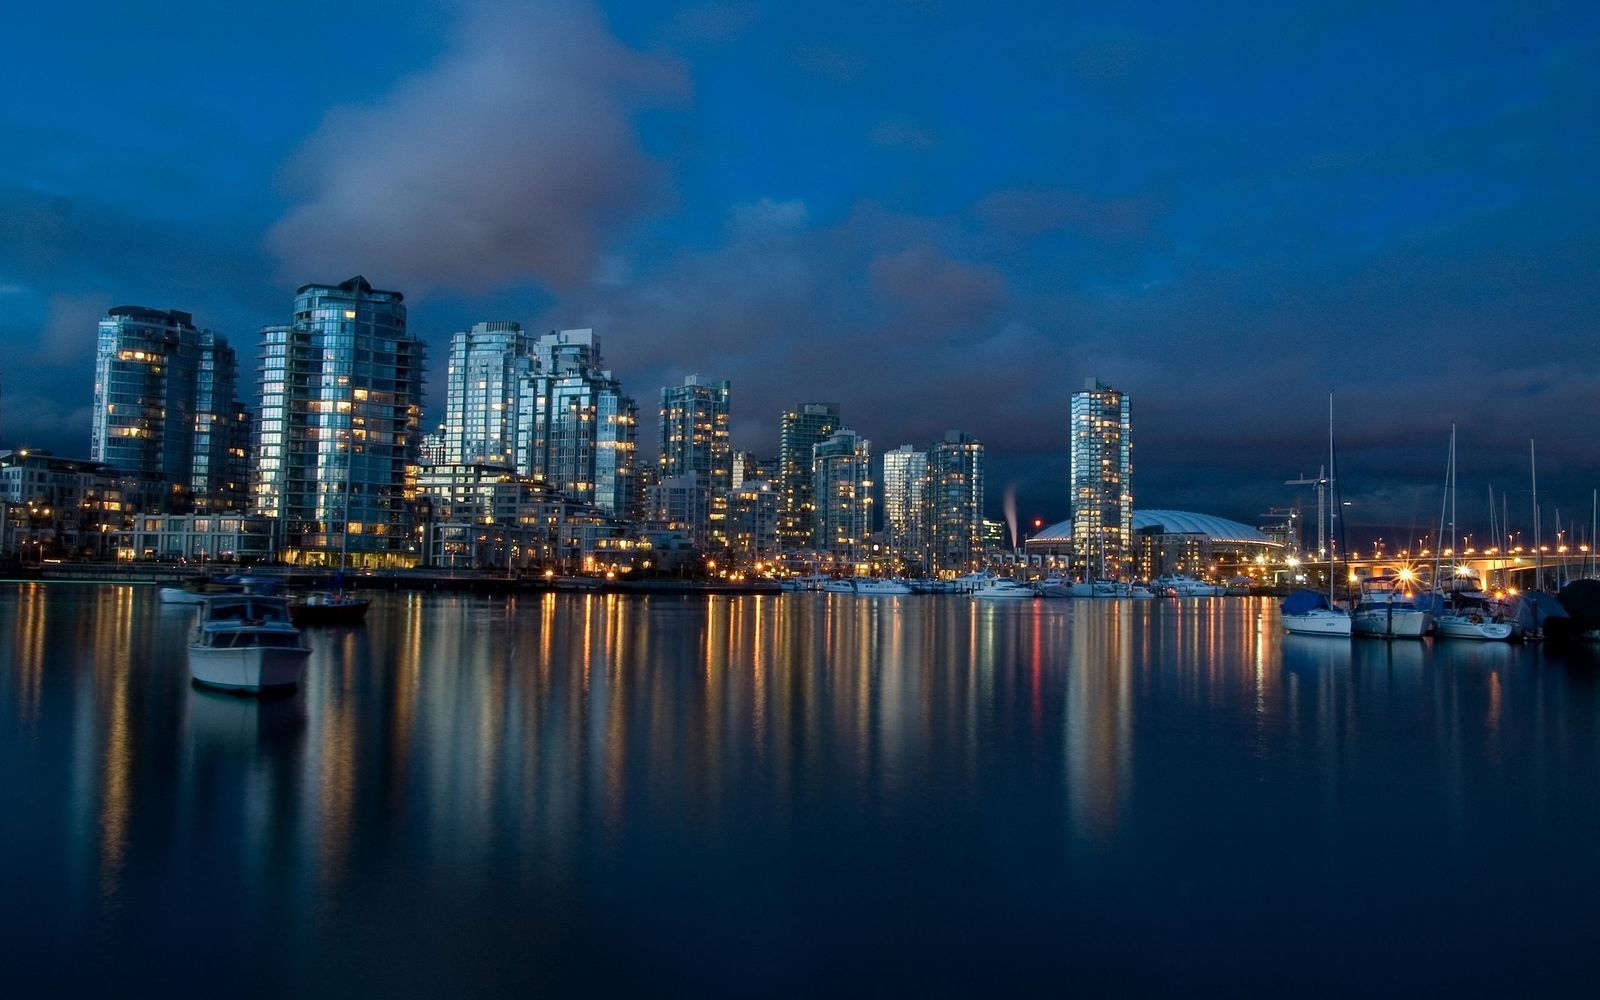 Ville - Vancouver - Nuit - Reflet - Wallpapers - HD